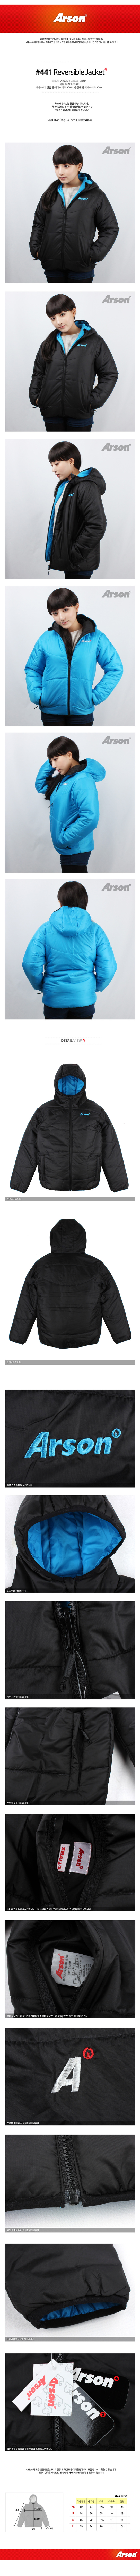 [ ARSON ] [Arson] ARSON GENUINE/441 Reversible Jacket (BLACK/BLUE)/winter padding/jumper/padded jacket